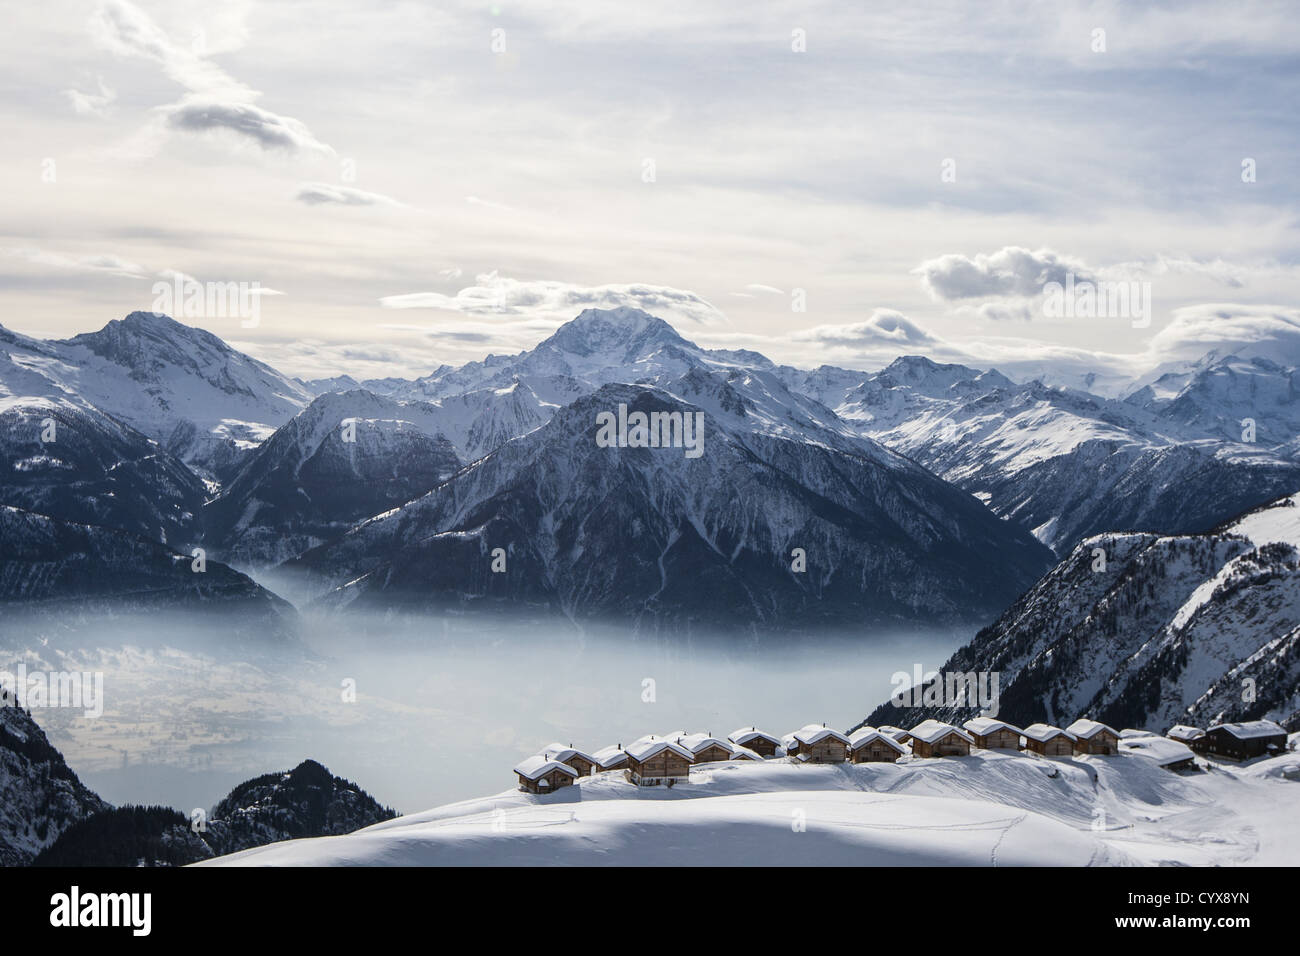 a view over the Swiss village of Bel Alp from the air with the Valais mountains in the background - Stock Image